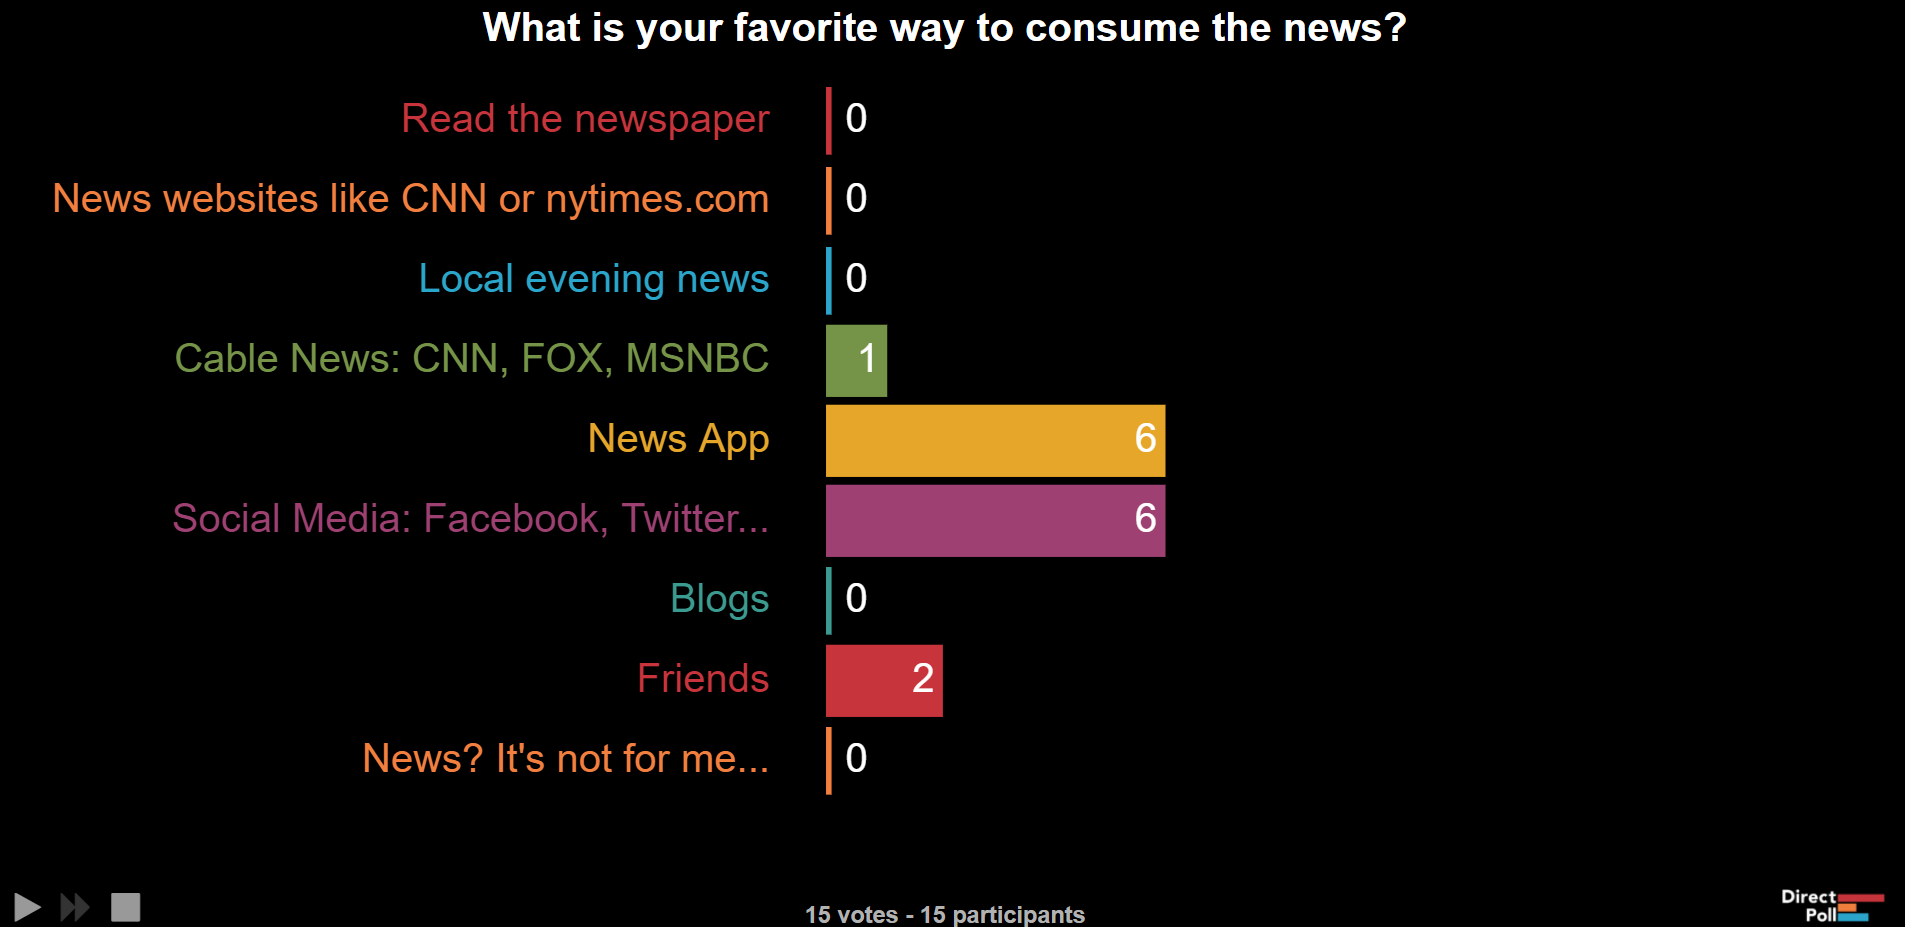 Poll Results - What is your favorite way to consume the news?